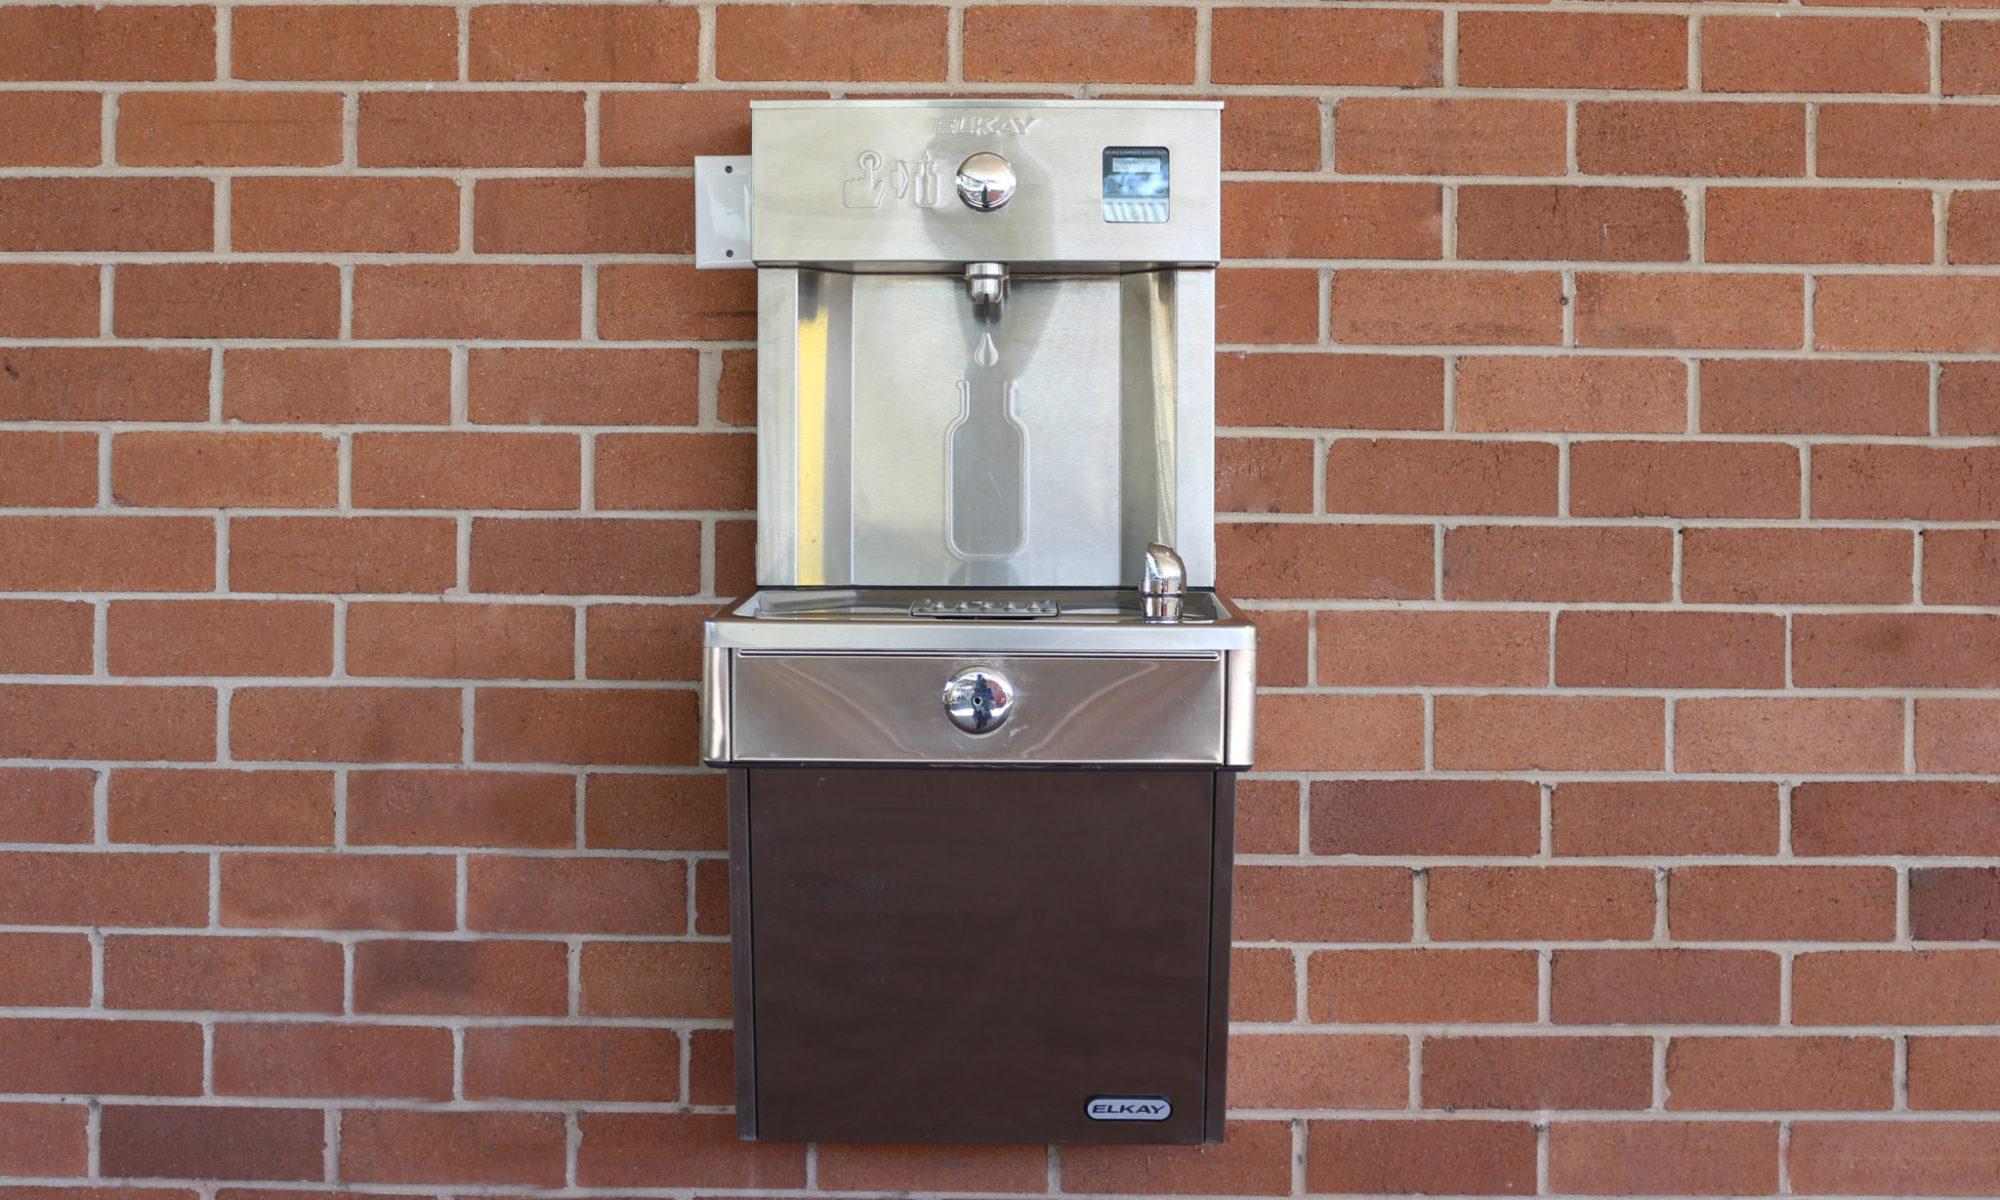 Epping Boys High School Upgrades Drinking Water Fountain Station